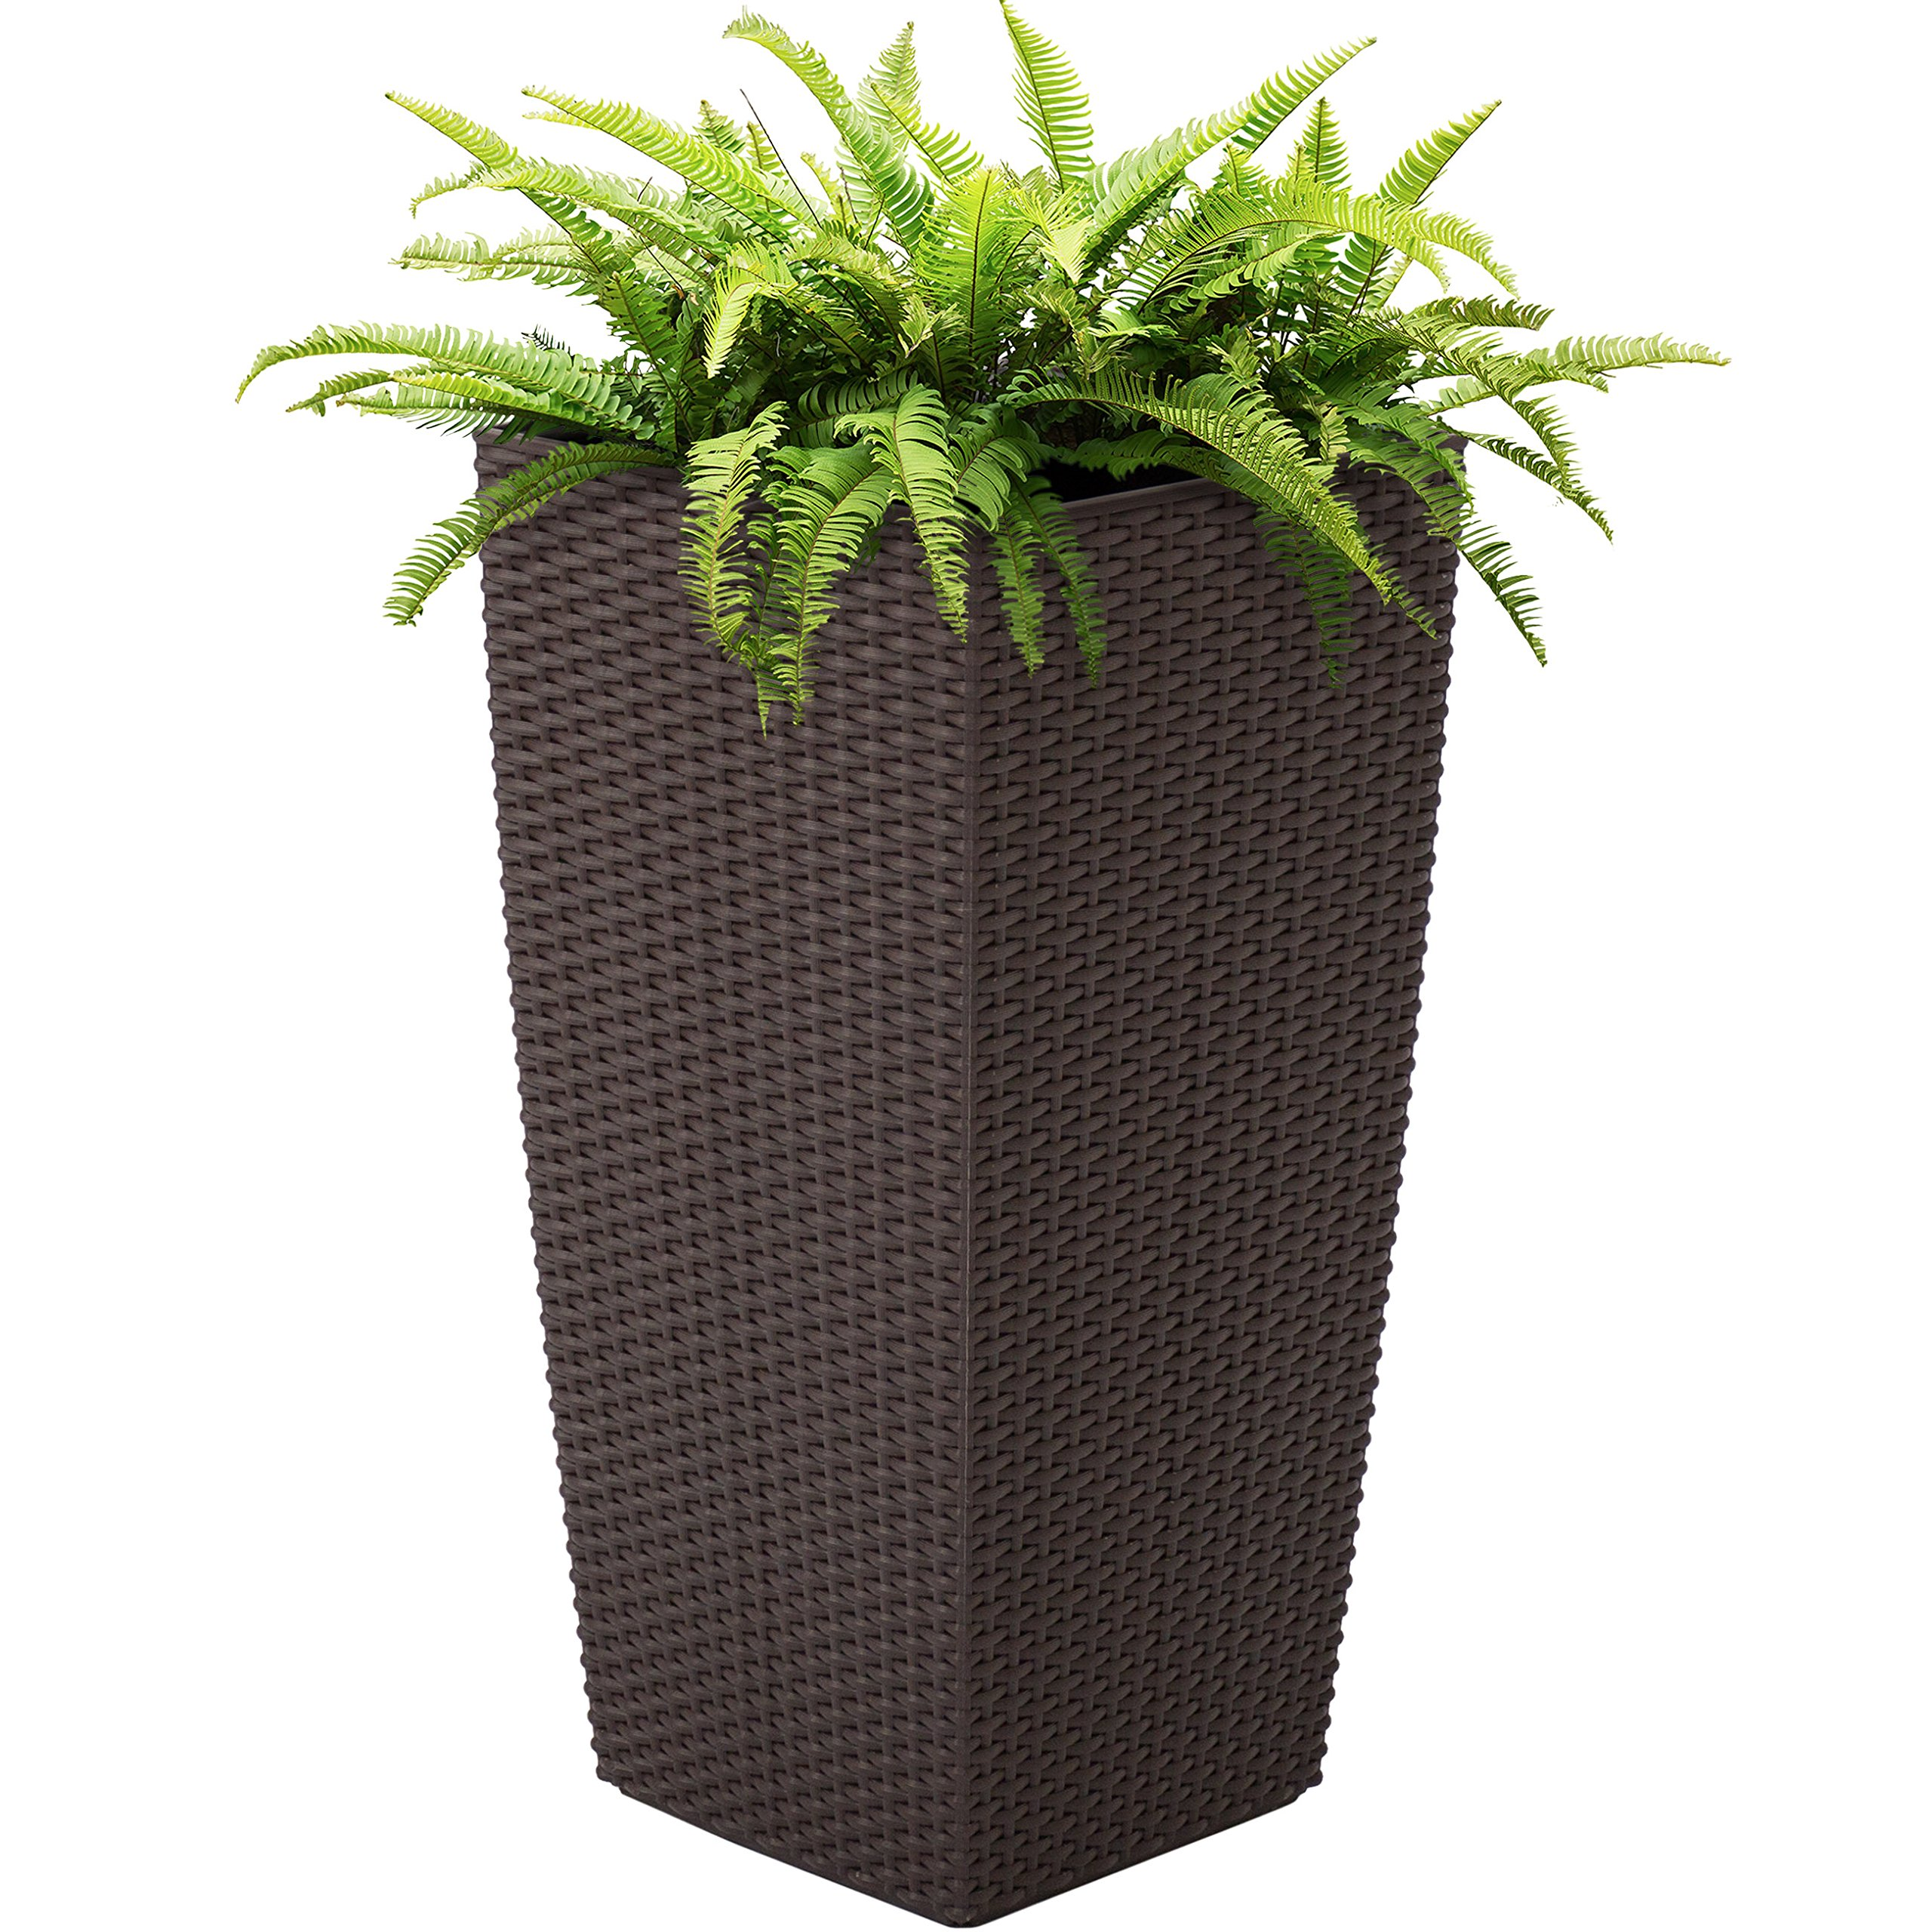 Best Choice Products Self Watering Wicker Planter w/Water Level Indicator, Rolling Wheels for Indoor, Outdoor - Brown by Best Choice Products